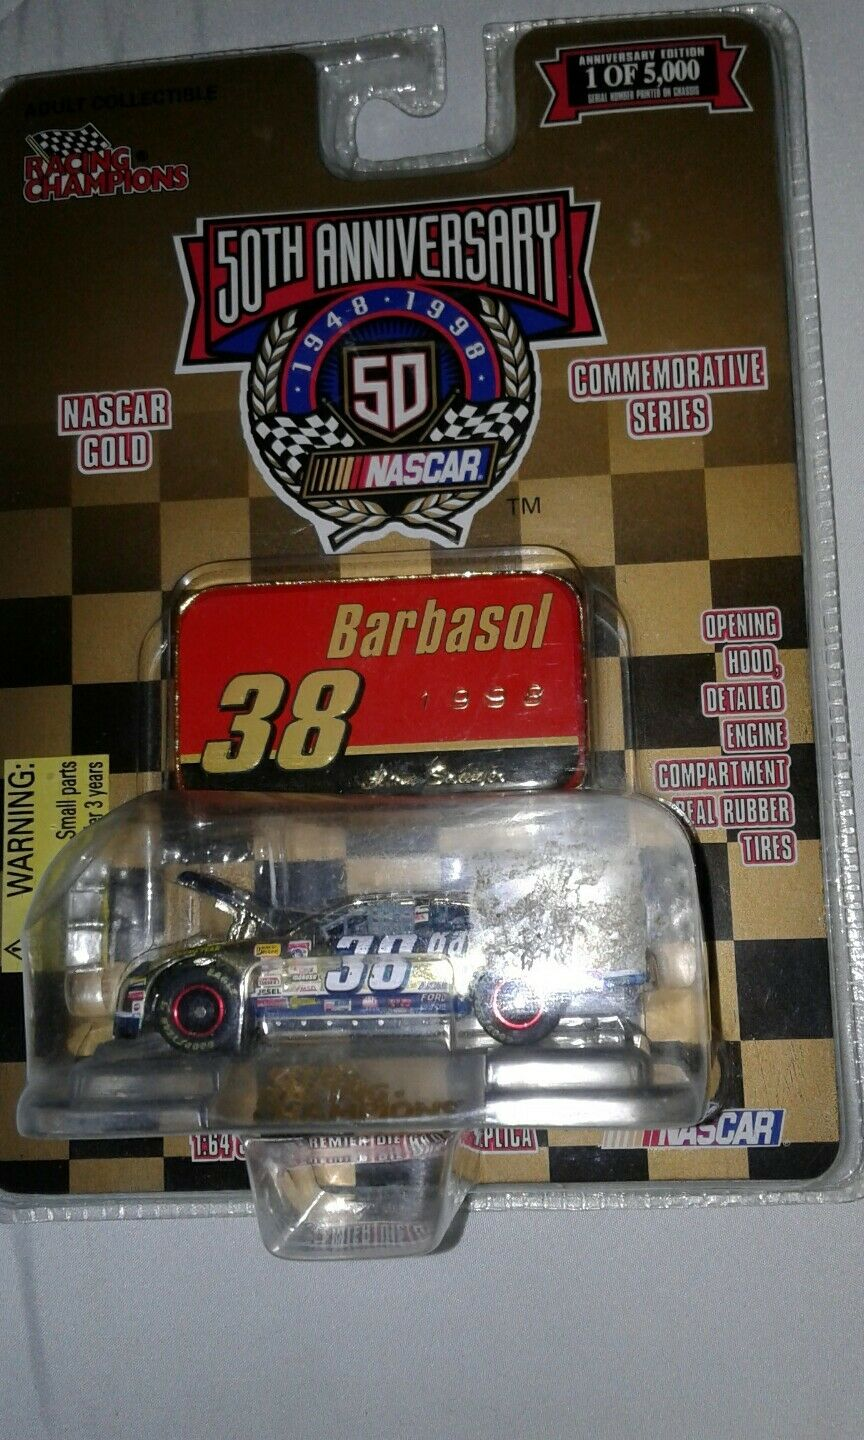 Racing Champions 50th Anniversary  38 Barbasol 1998 oro oro oro Commemorative 6ec6ef